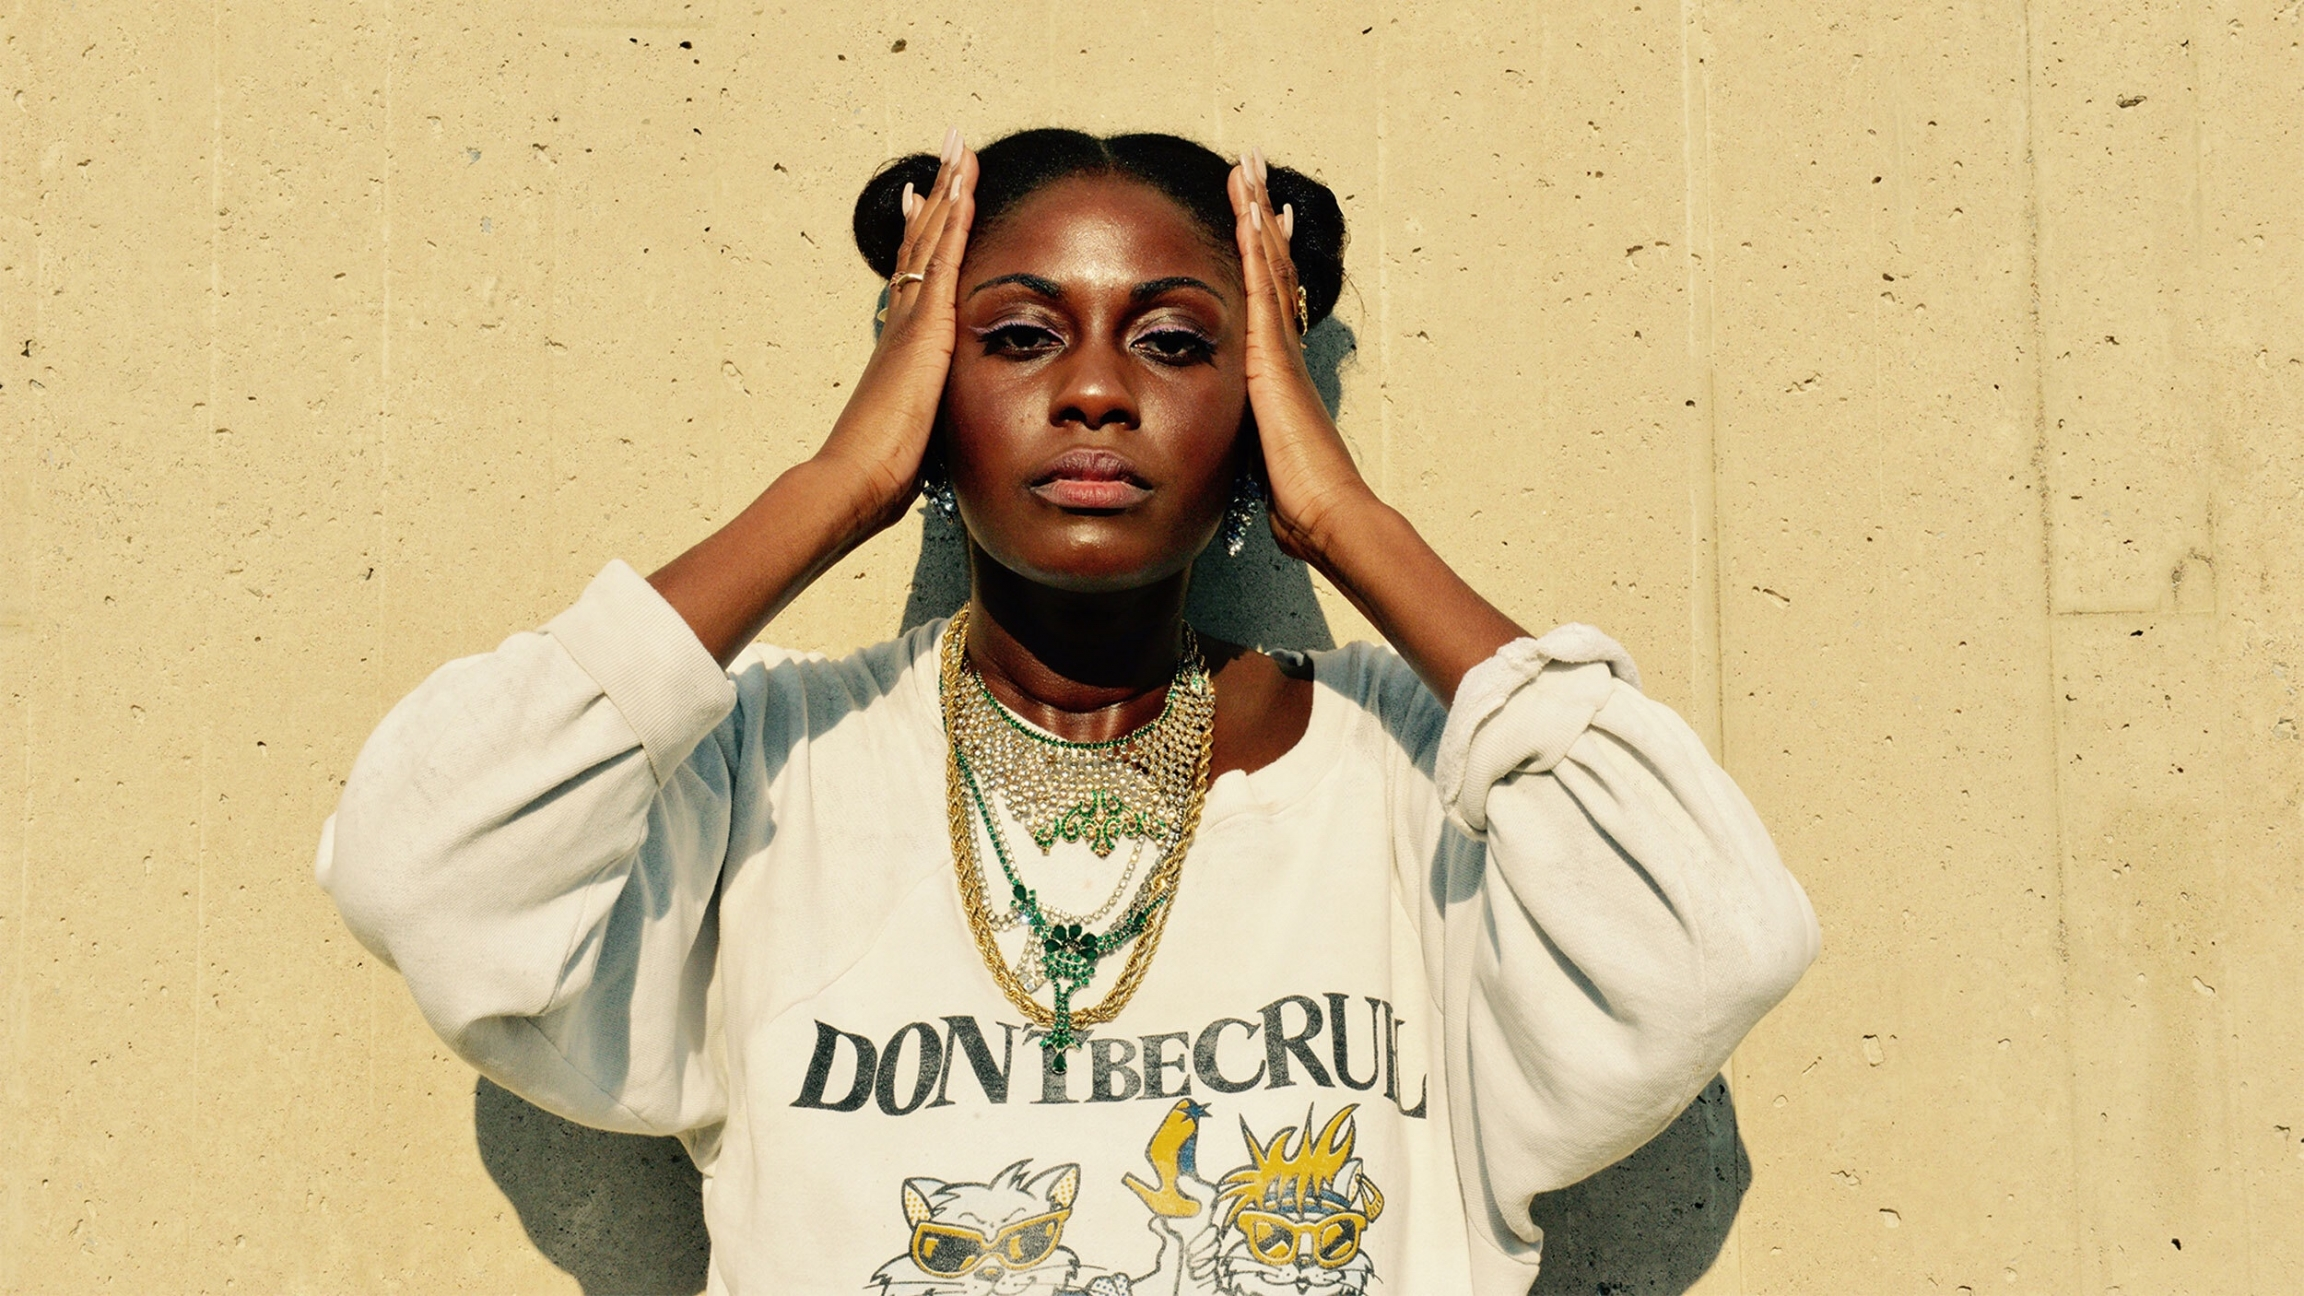 For Dr. Enongo Lumumba Kasongo, whose stage name is Sammus, Afrofuturism has been a well of inspiration and a living current underneath all her work.